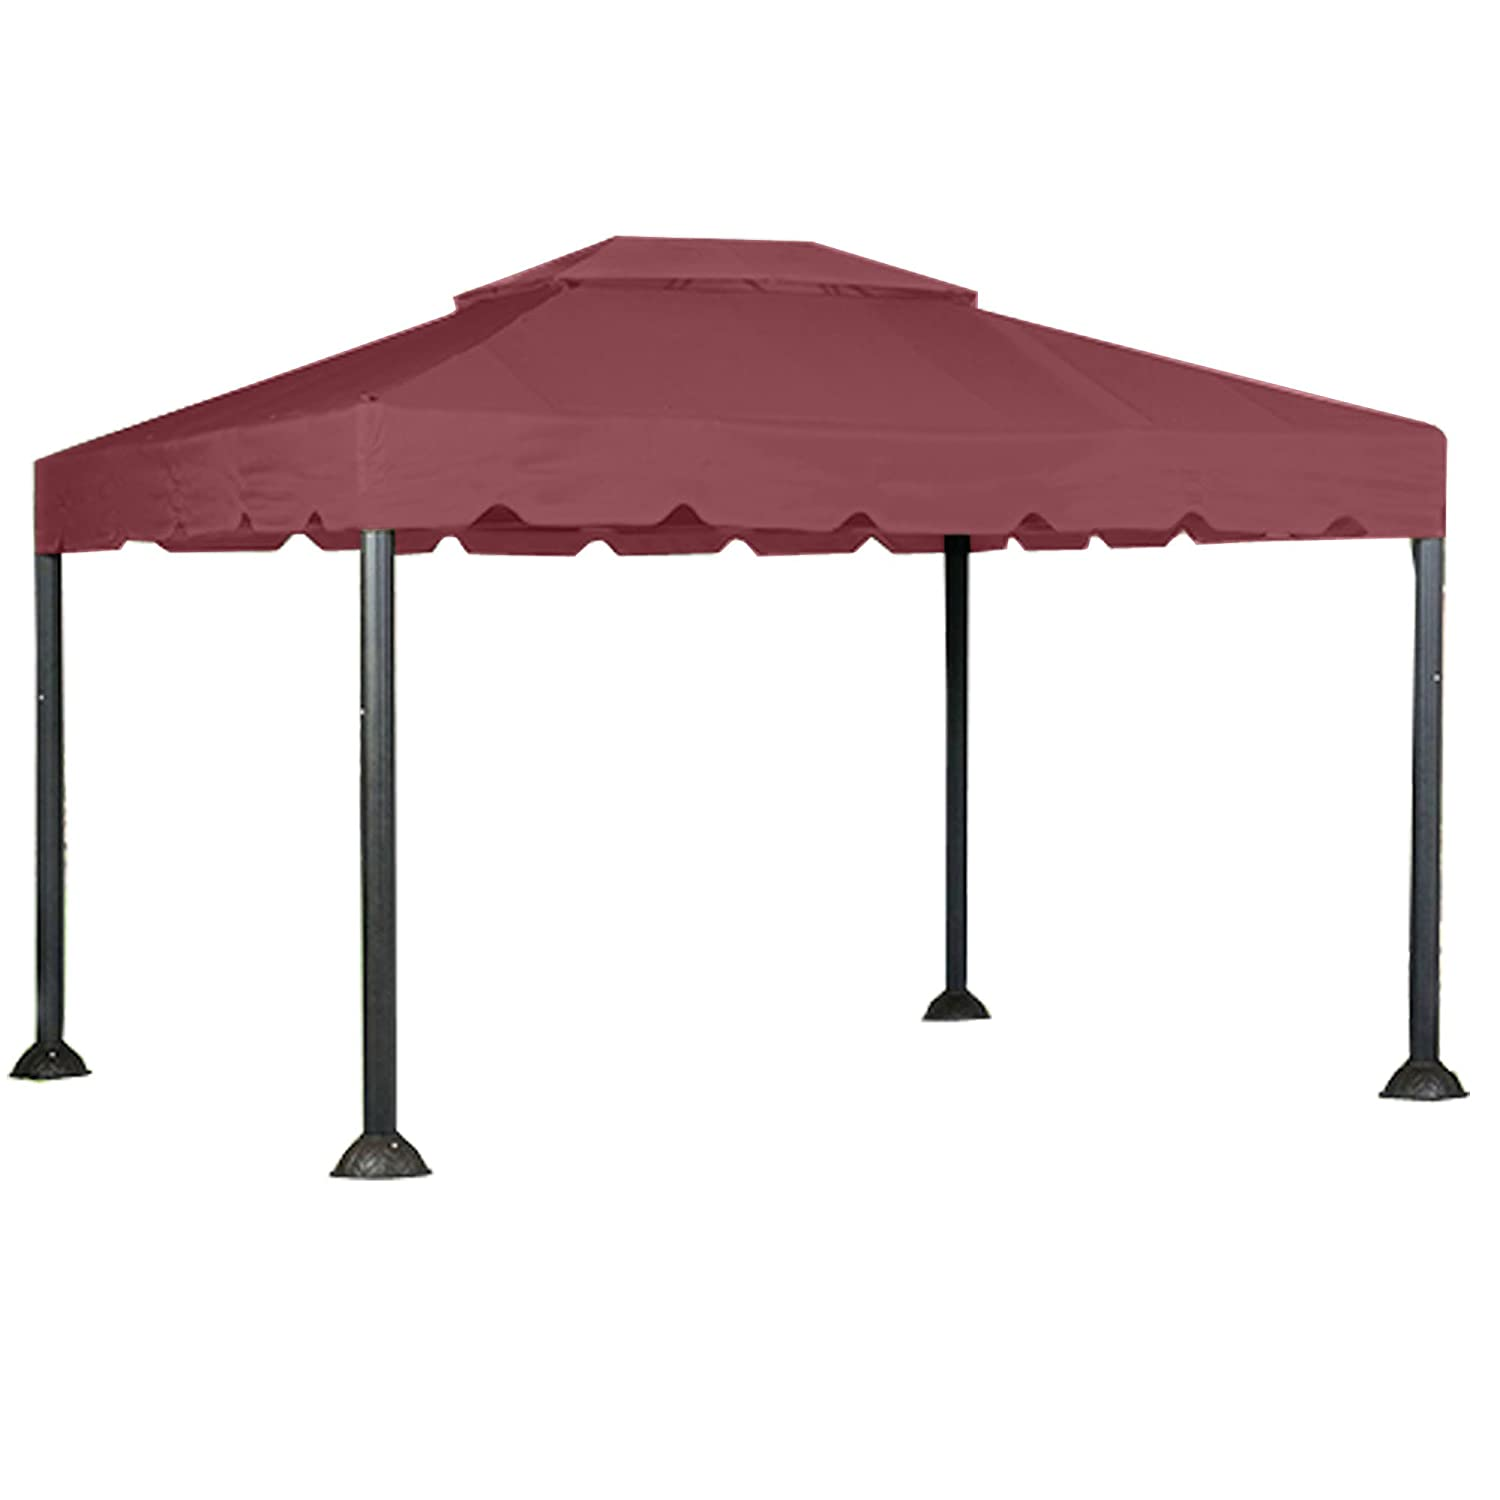 10 x 12 garden house gazebo replacement canopy riplock 350 garden winds lcm1166b rs